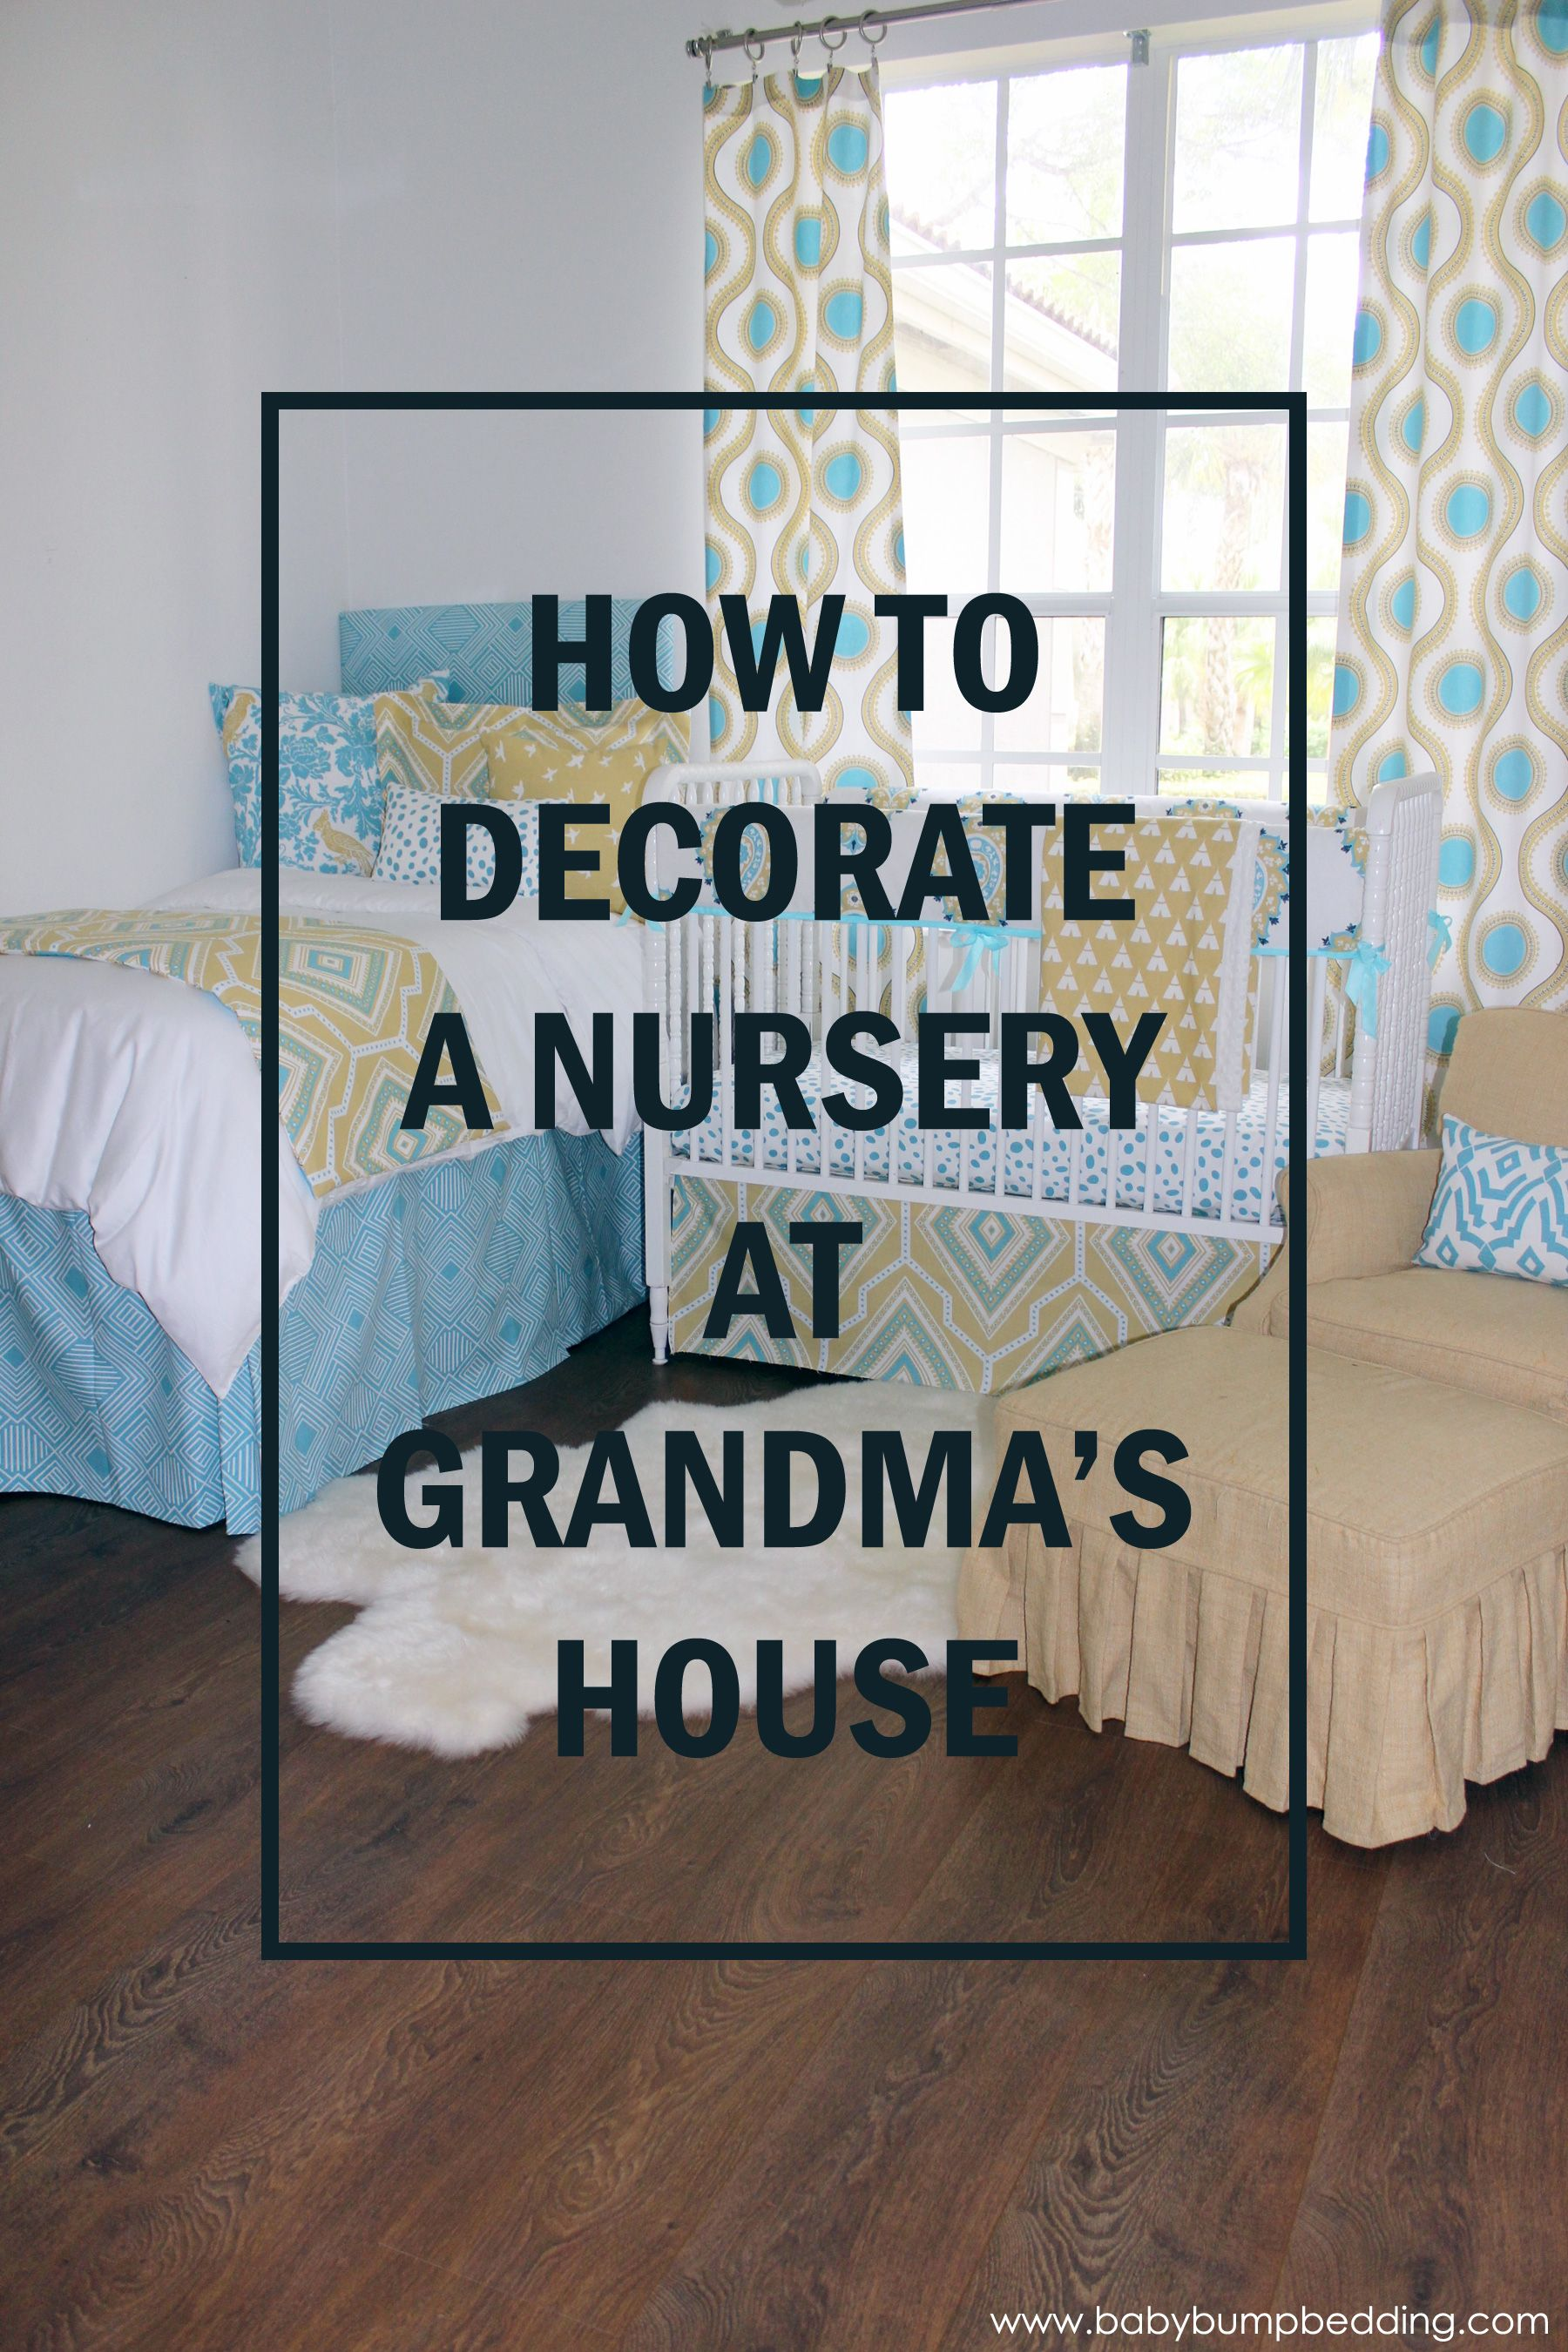 Decorating grandma s nursery  Design your nursery to match your  sophisticated style  Nursery at grandparents. Navy Deer Woodland Baby Boy Crib Bedding Set   Colleges  Home and